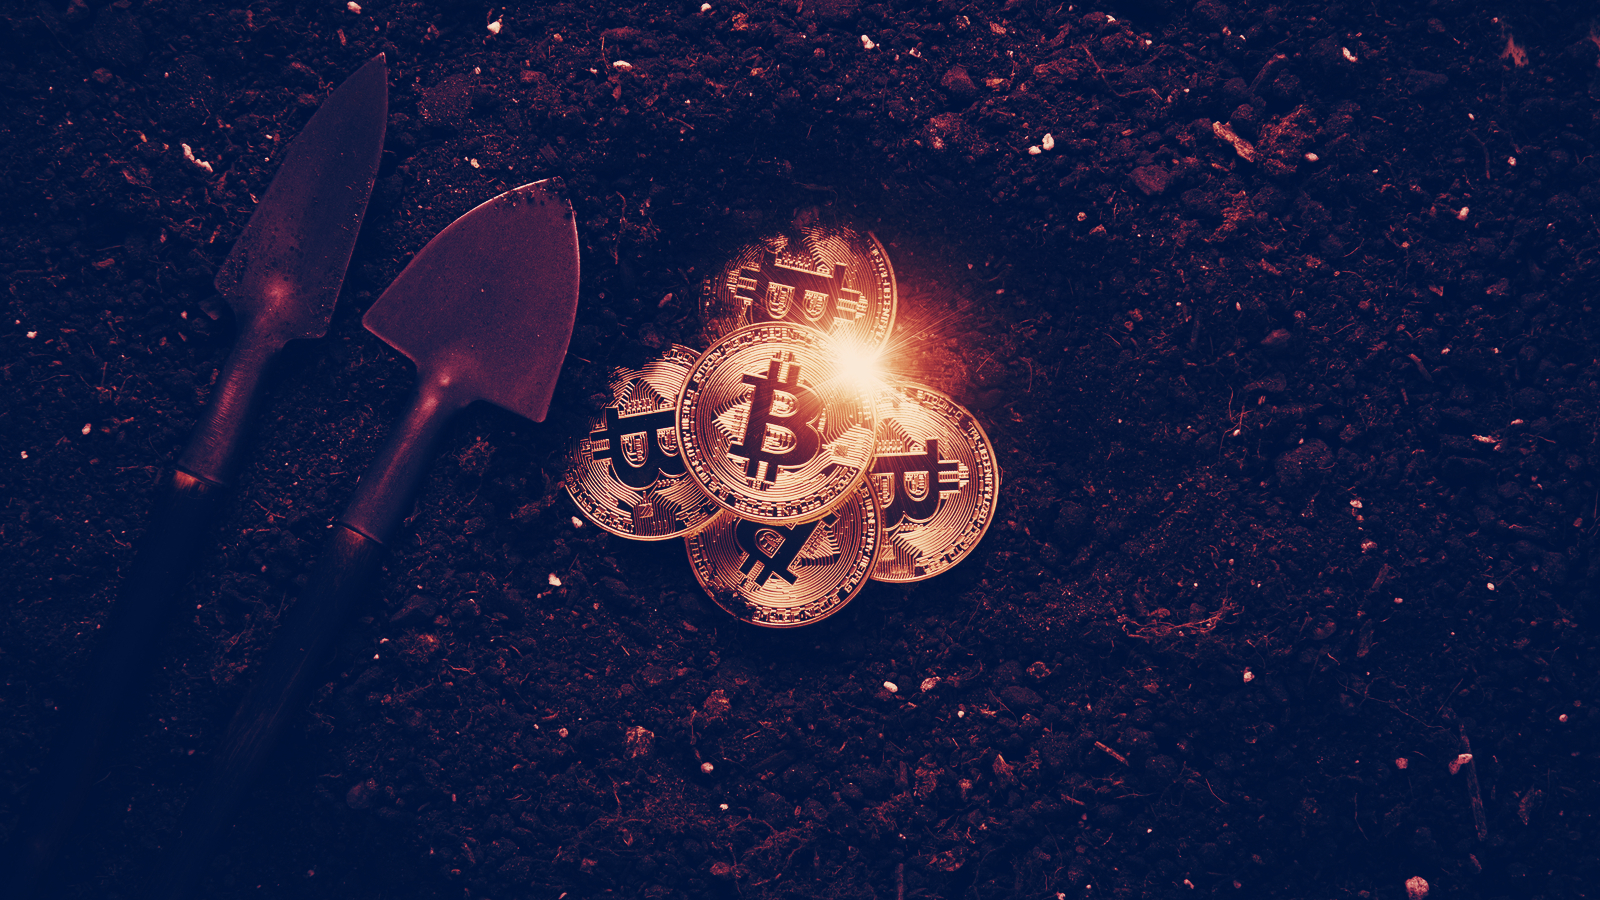 Pakistan is Now Using Government Funds to Mine Bitcoin - Decrypt